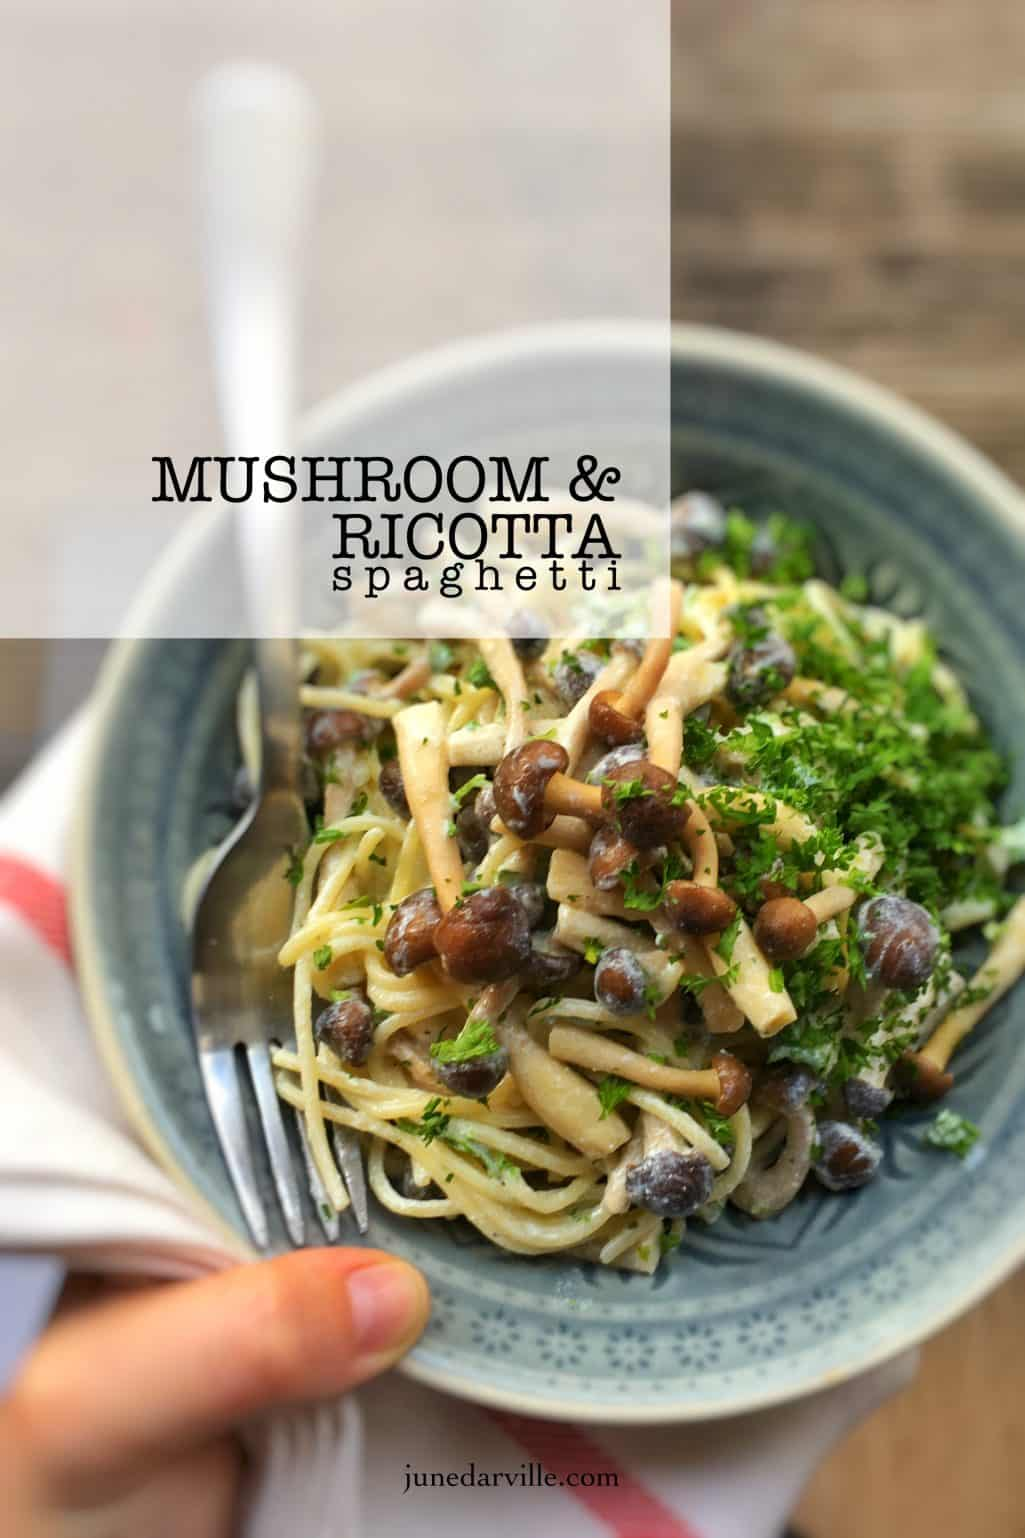 Here's another great dinner with leftovers! Let's make a creamy mushroom spaghetti with a bunch of garlic and ricotta sauce!